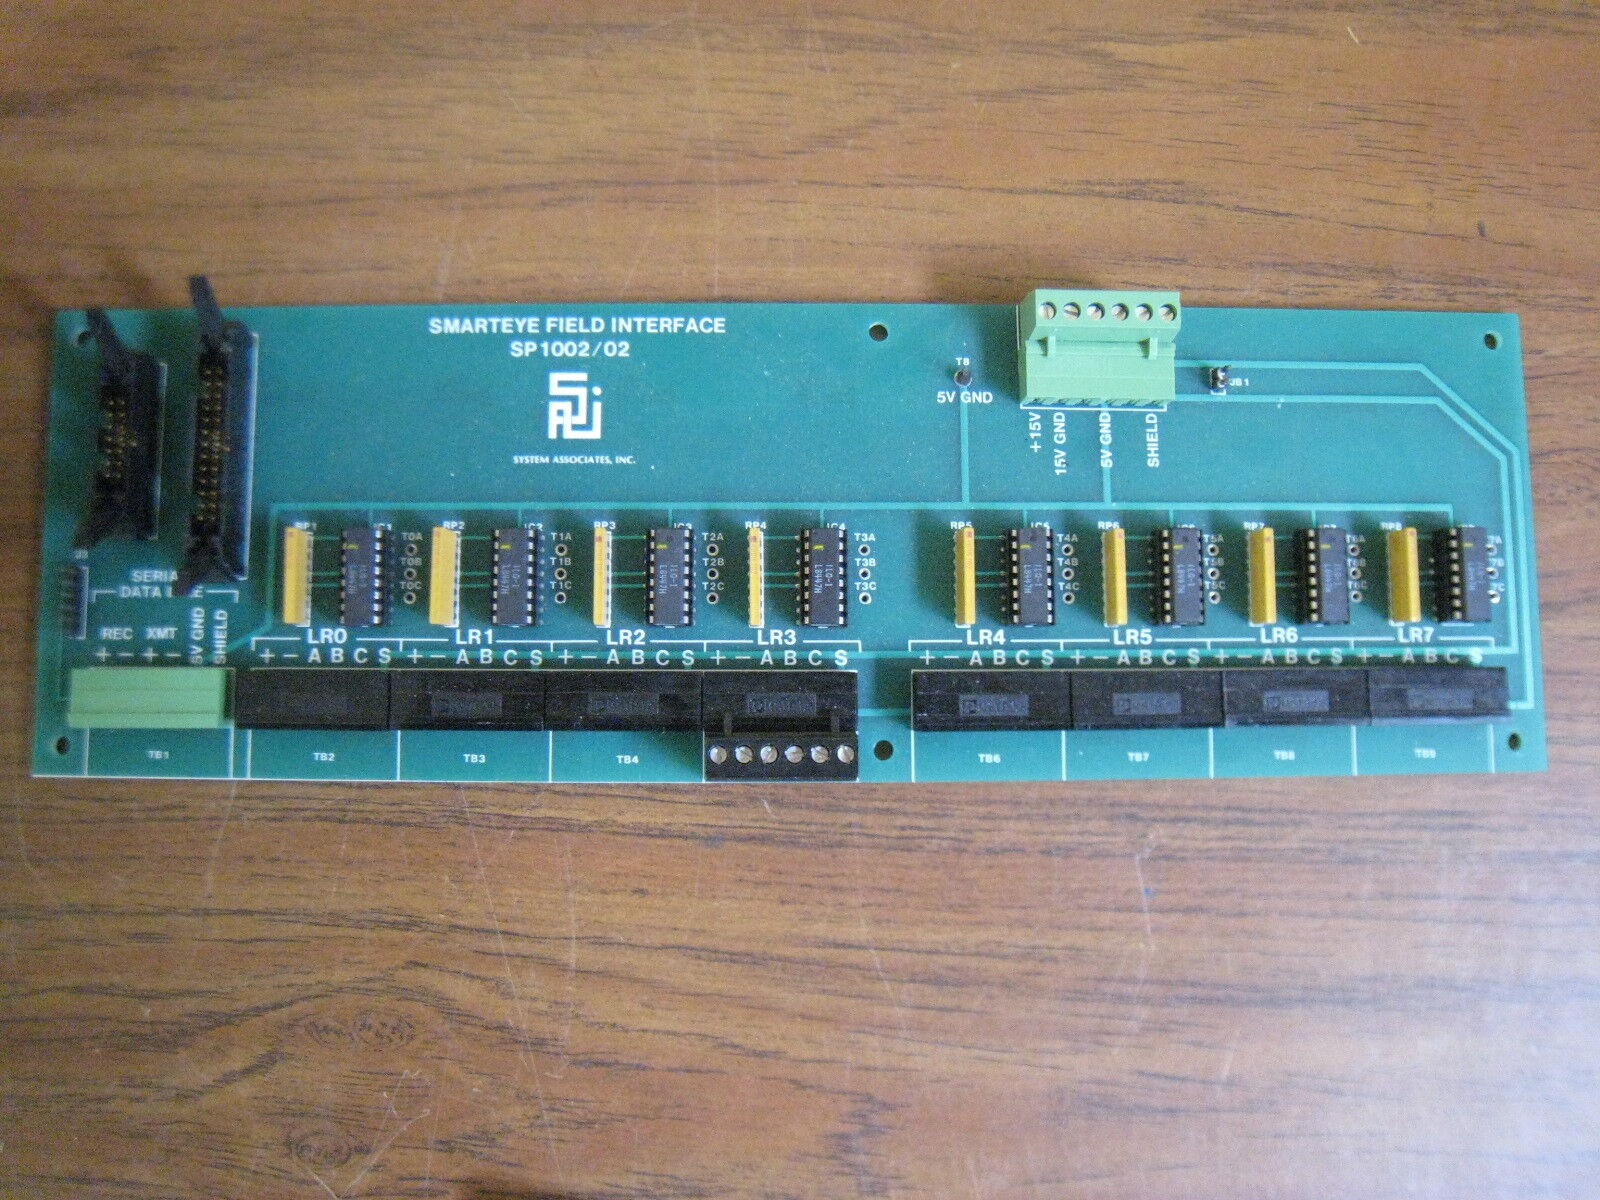 SMARTEYE SP1002 02 ELECTRONIC ASSEMBLY PCB FIELD INTERFACE PC BOARD USED